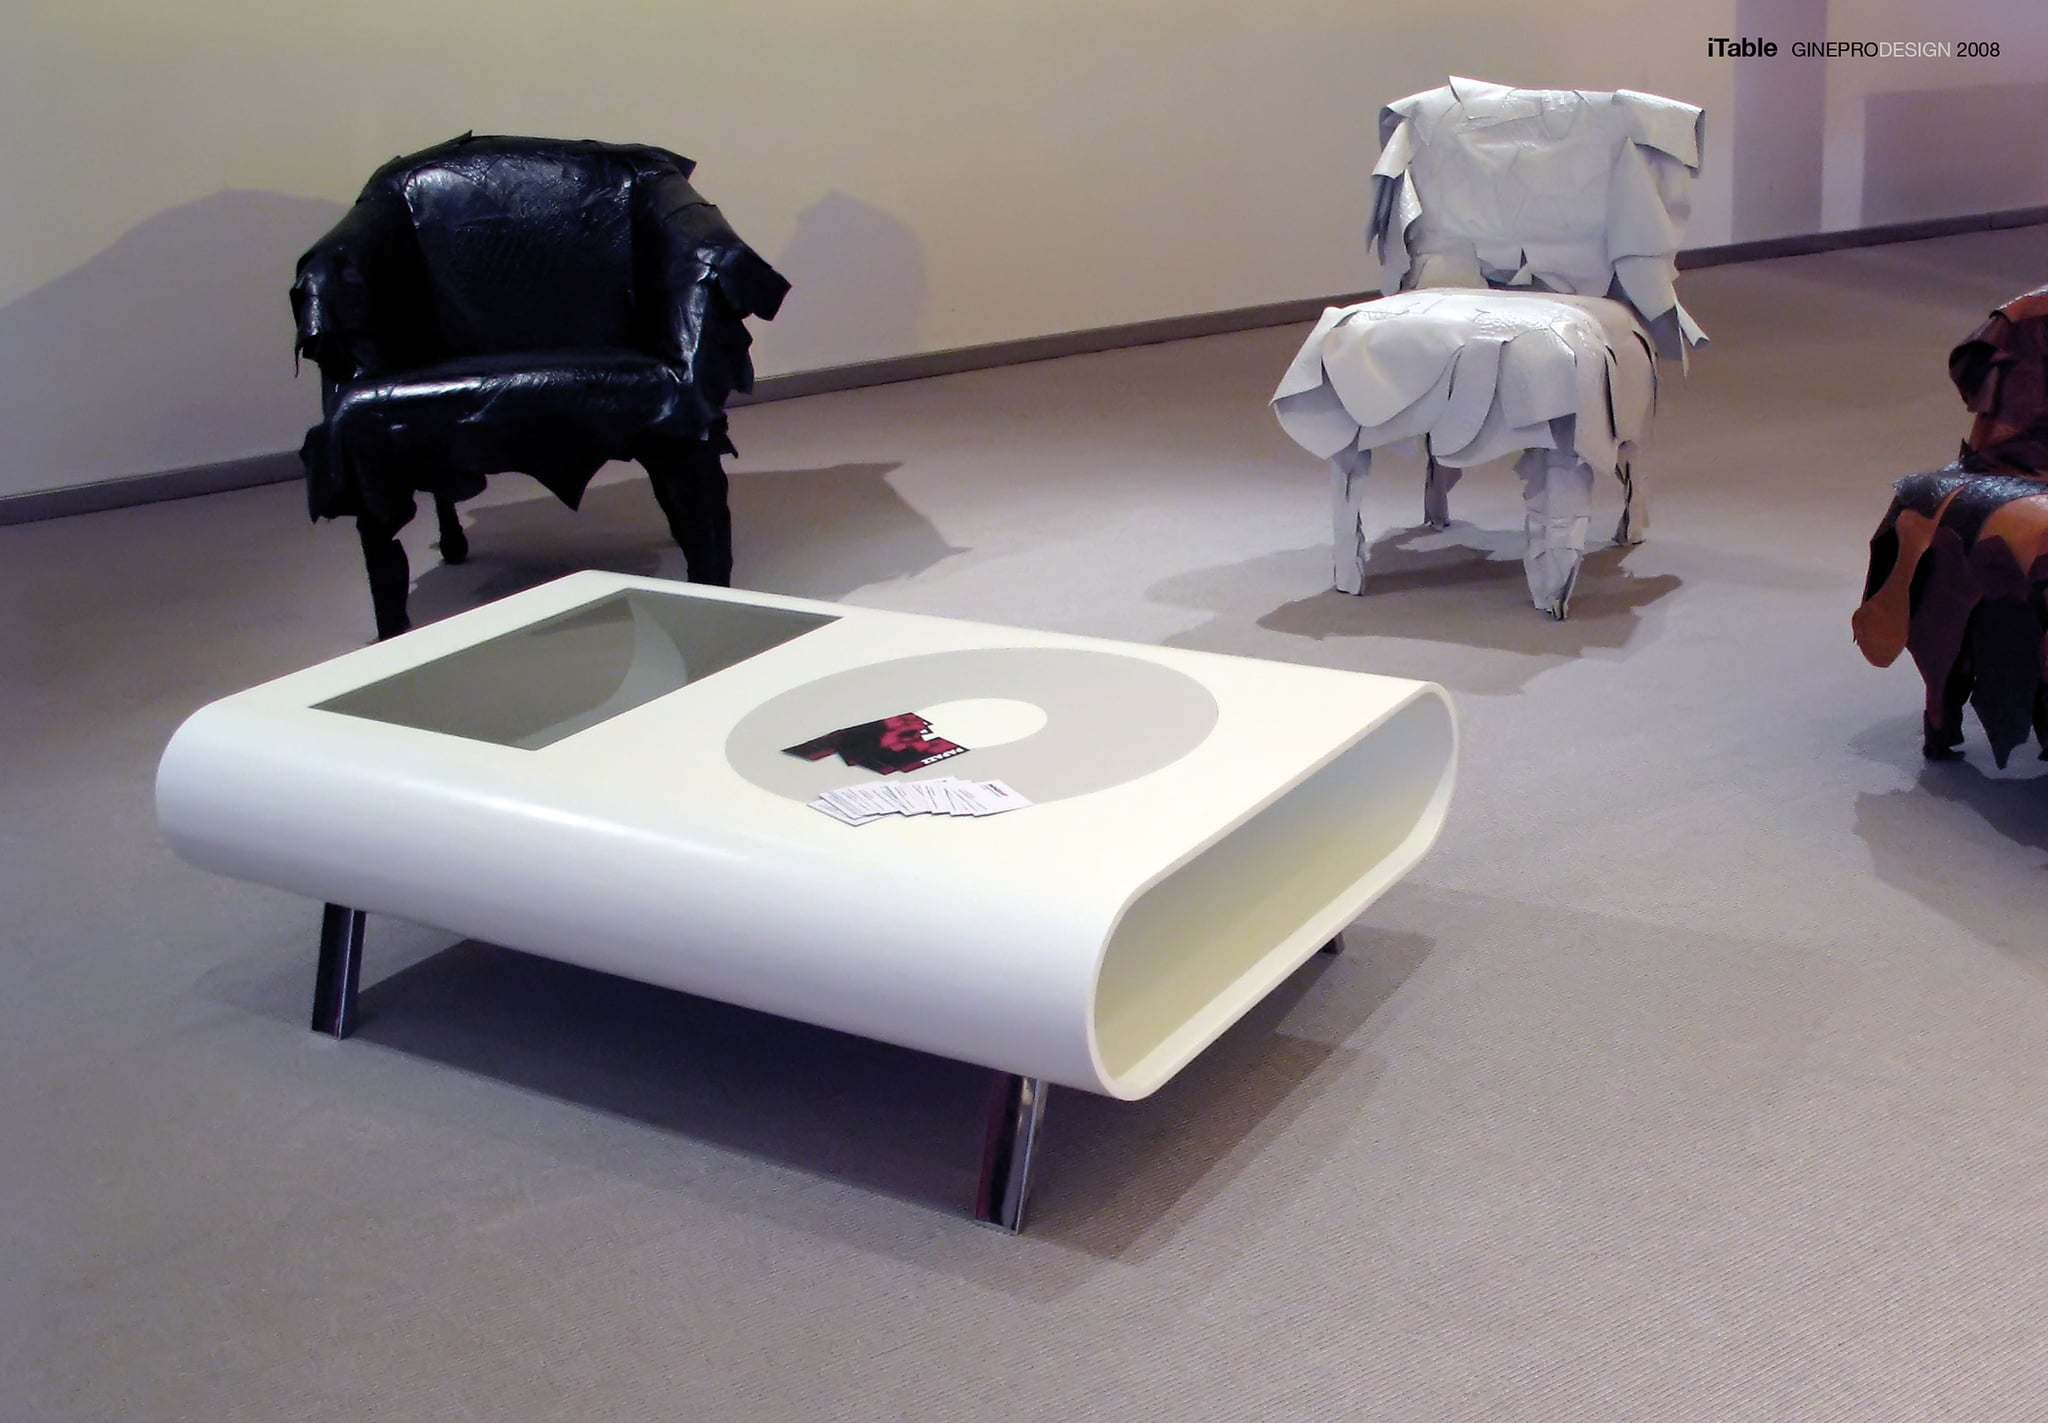 Photos of the iFurniture